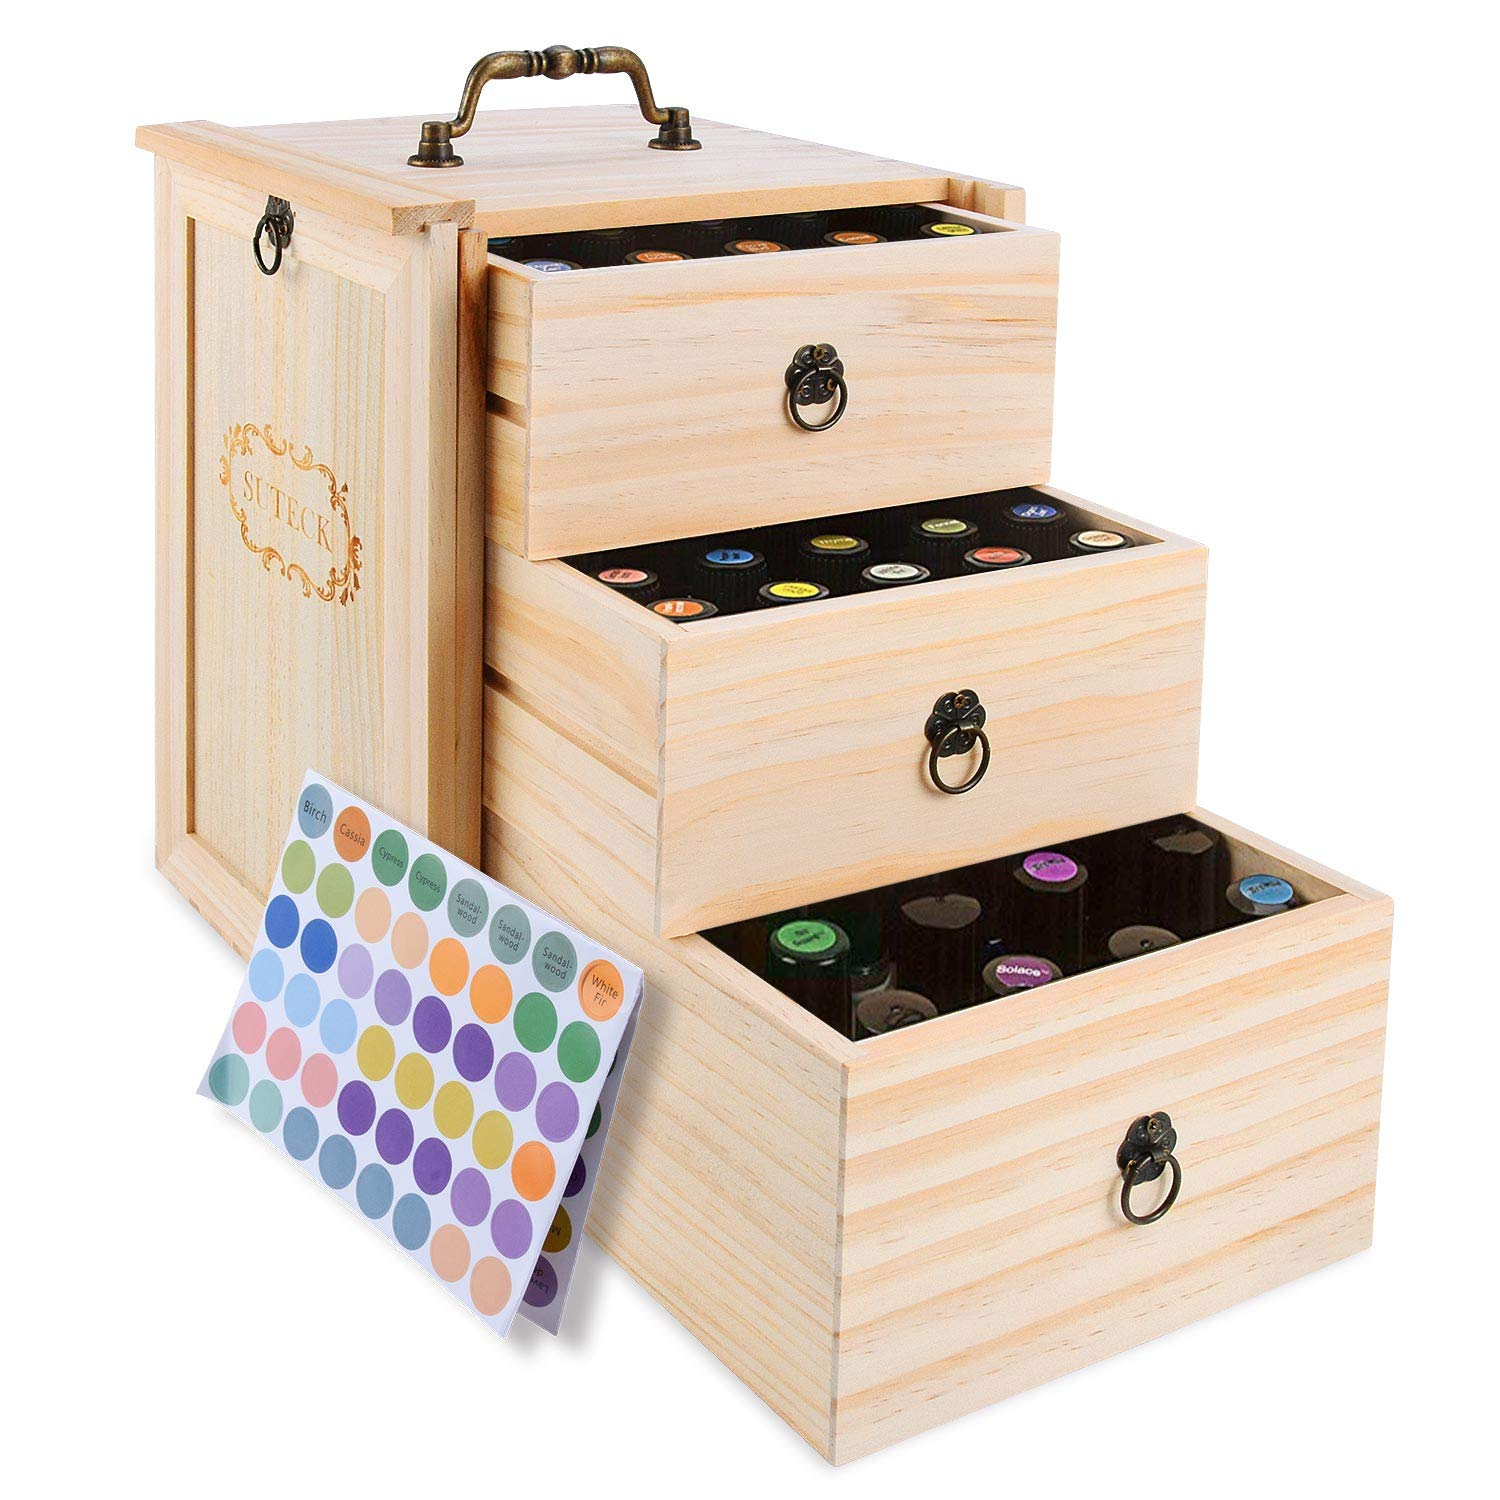 3 Tier Essential Oil Box Wooden Storage Case With Handle Holds for 75 Bottles & Roller Balls Essential Oil Space Saver Free EO Labels by Suteck